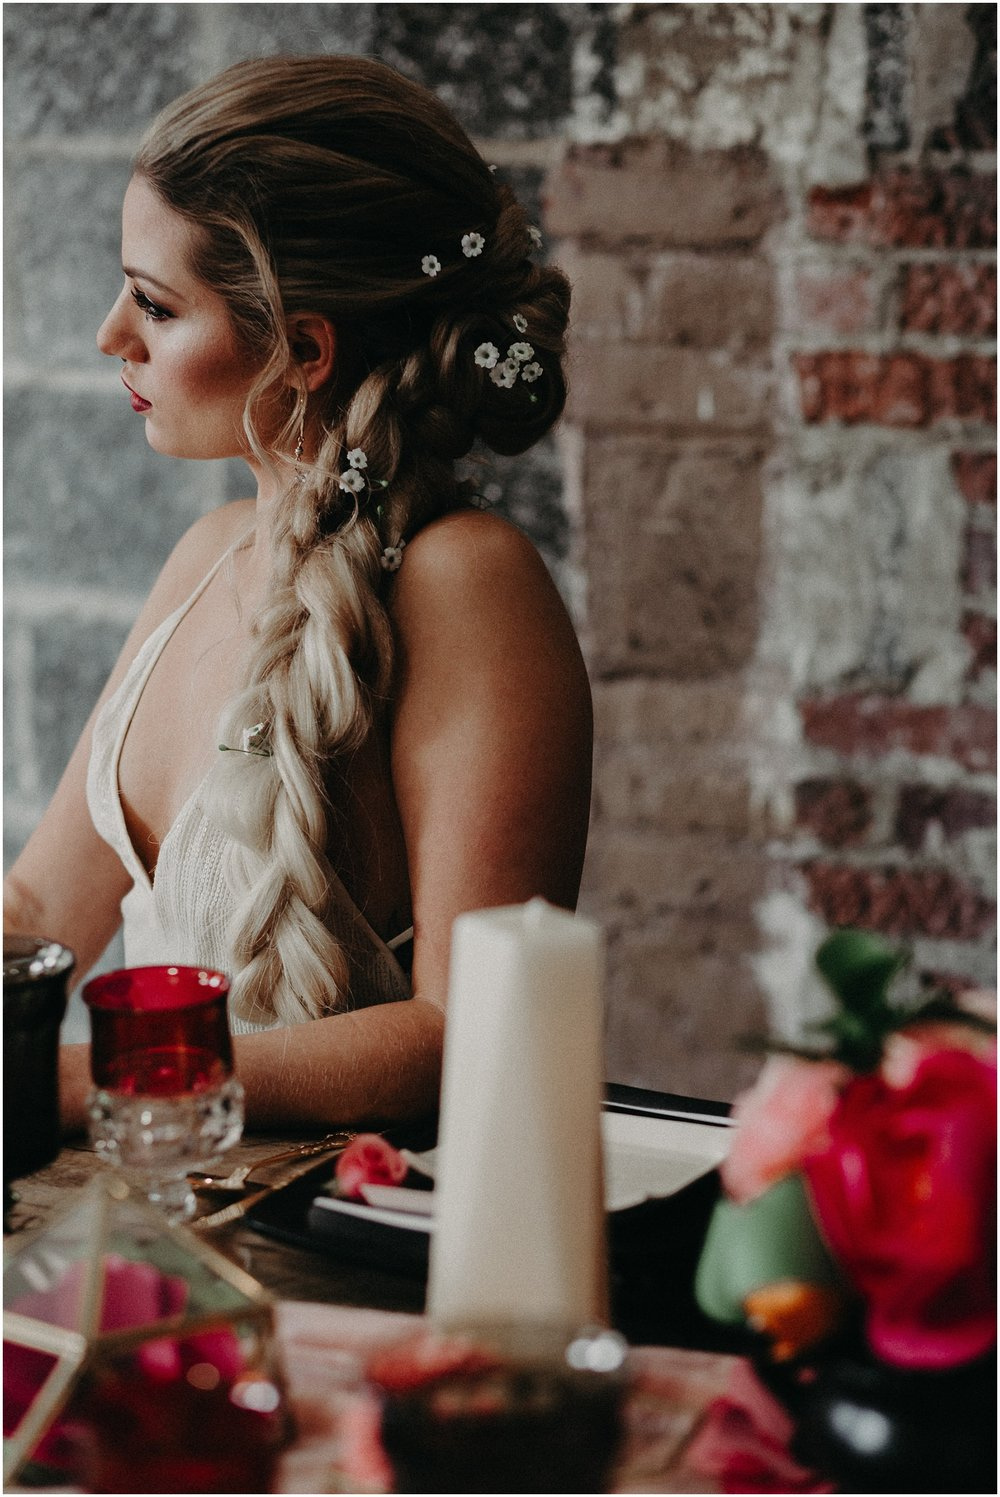 styled shoot-bridal portraits-portraits-bride-rock and roll-industrial-urban-wedding-inspiration-nj-new jersey-nyc-new york city-art-diy wedding_0031.jpg